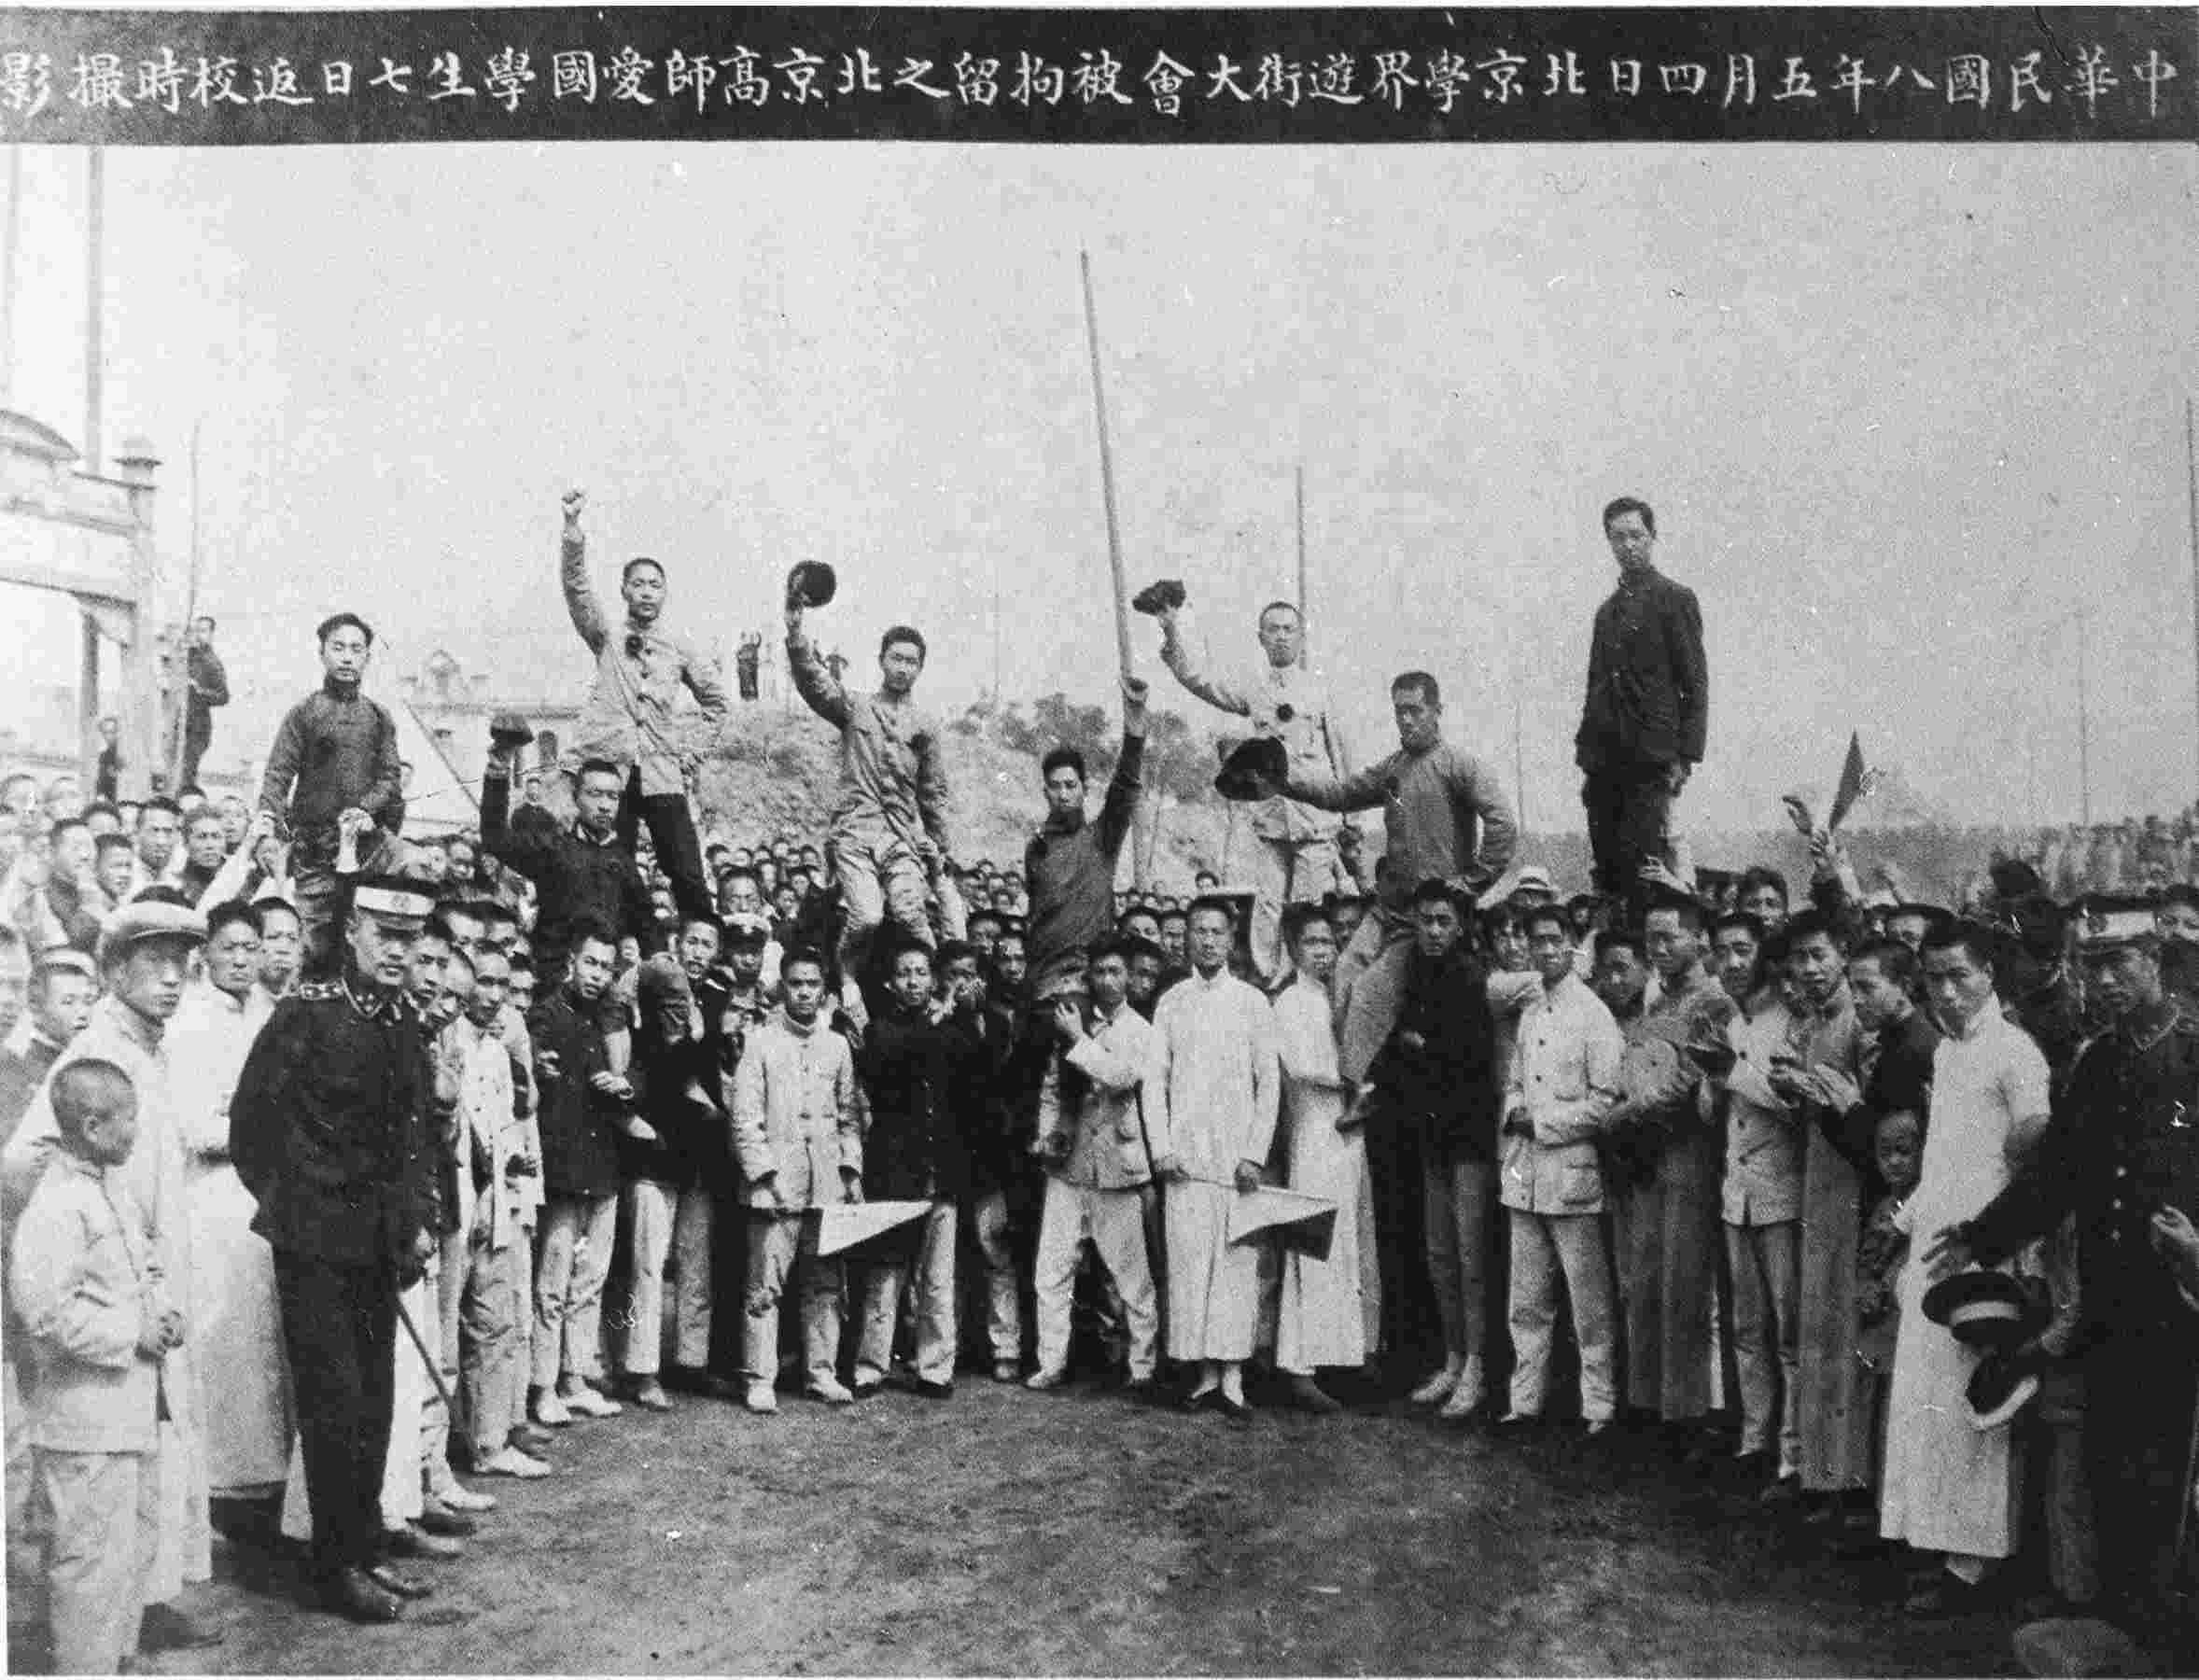 Student protestors from the predecessor of Beijing Normal University took a picture seven days after they were released from jail for participating in the May 4 parade.